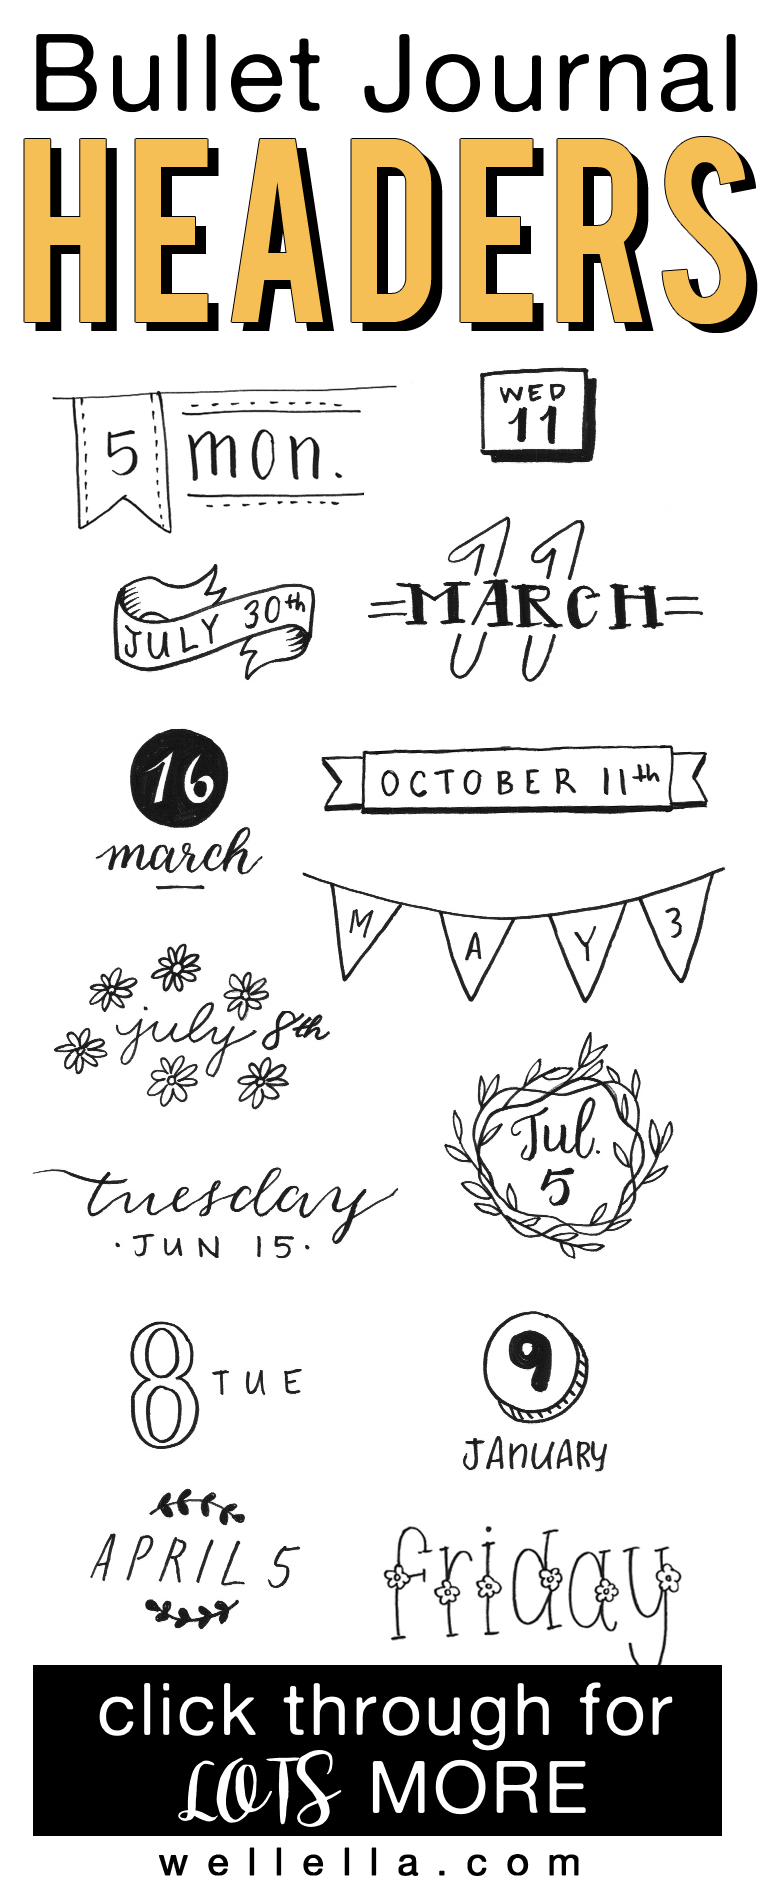 Bullet Journal Headers You Can Easily Copy + Examples